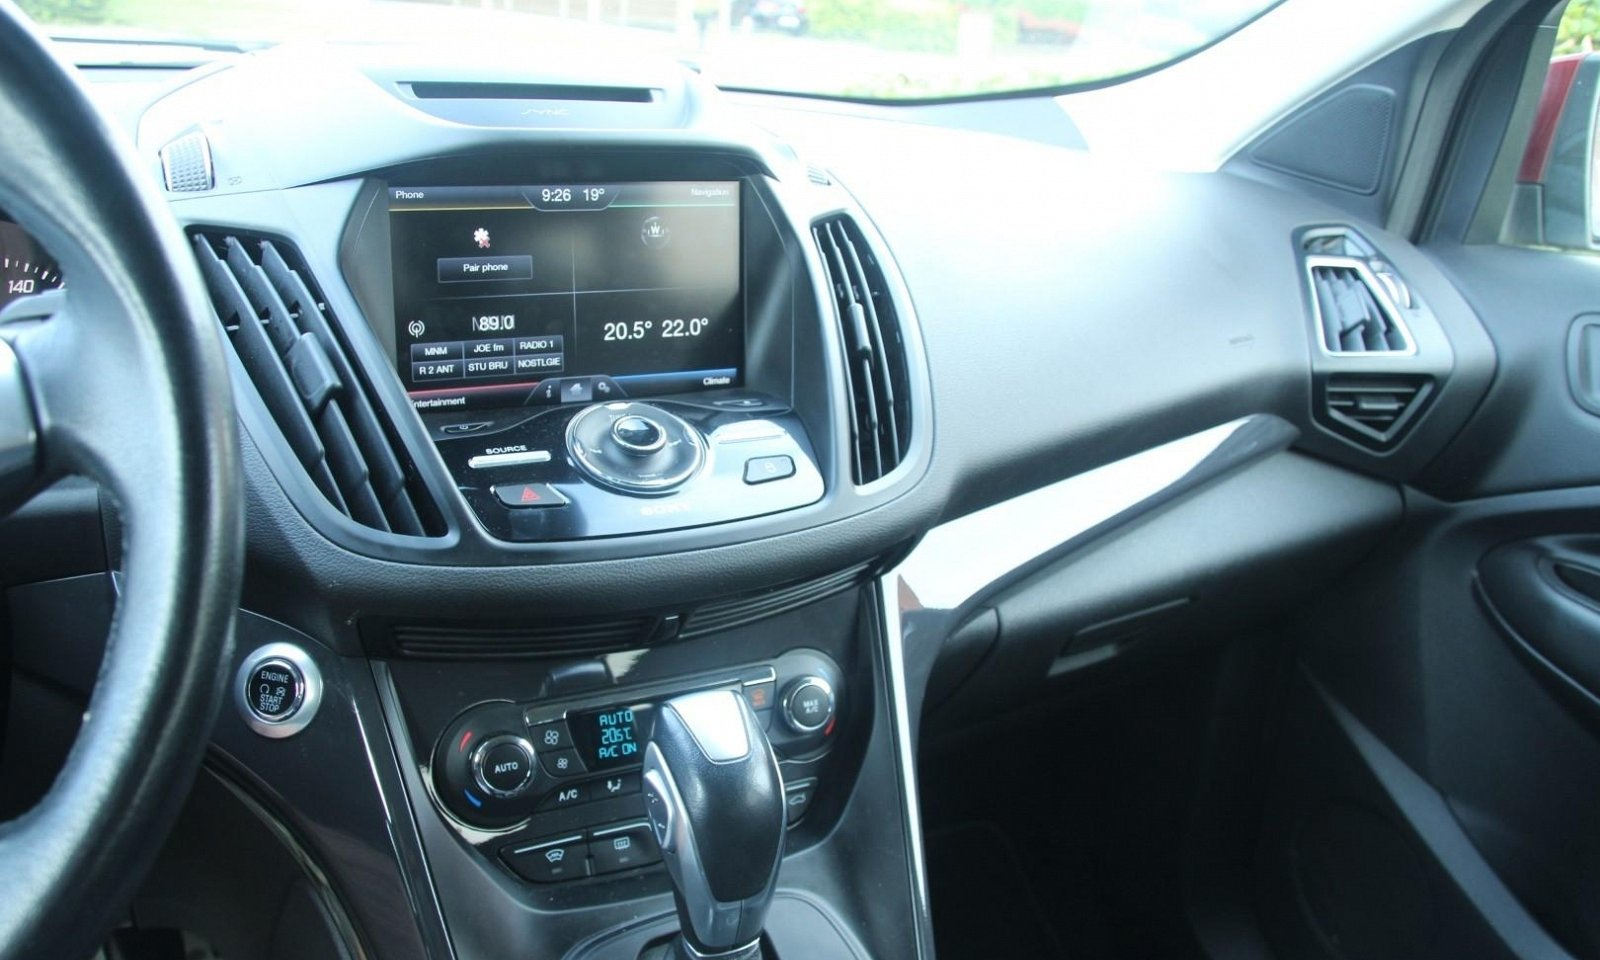 Ford KUGA - 1.5 ecoboost Automaat